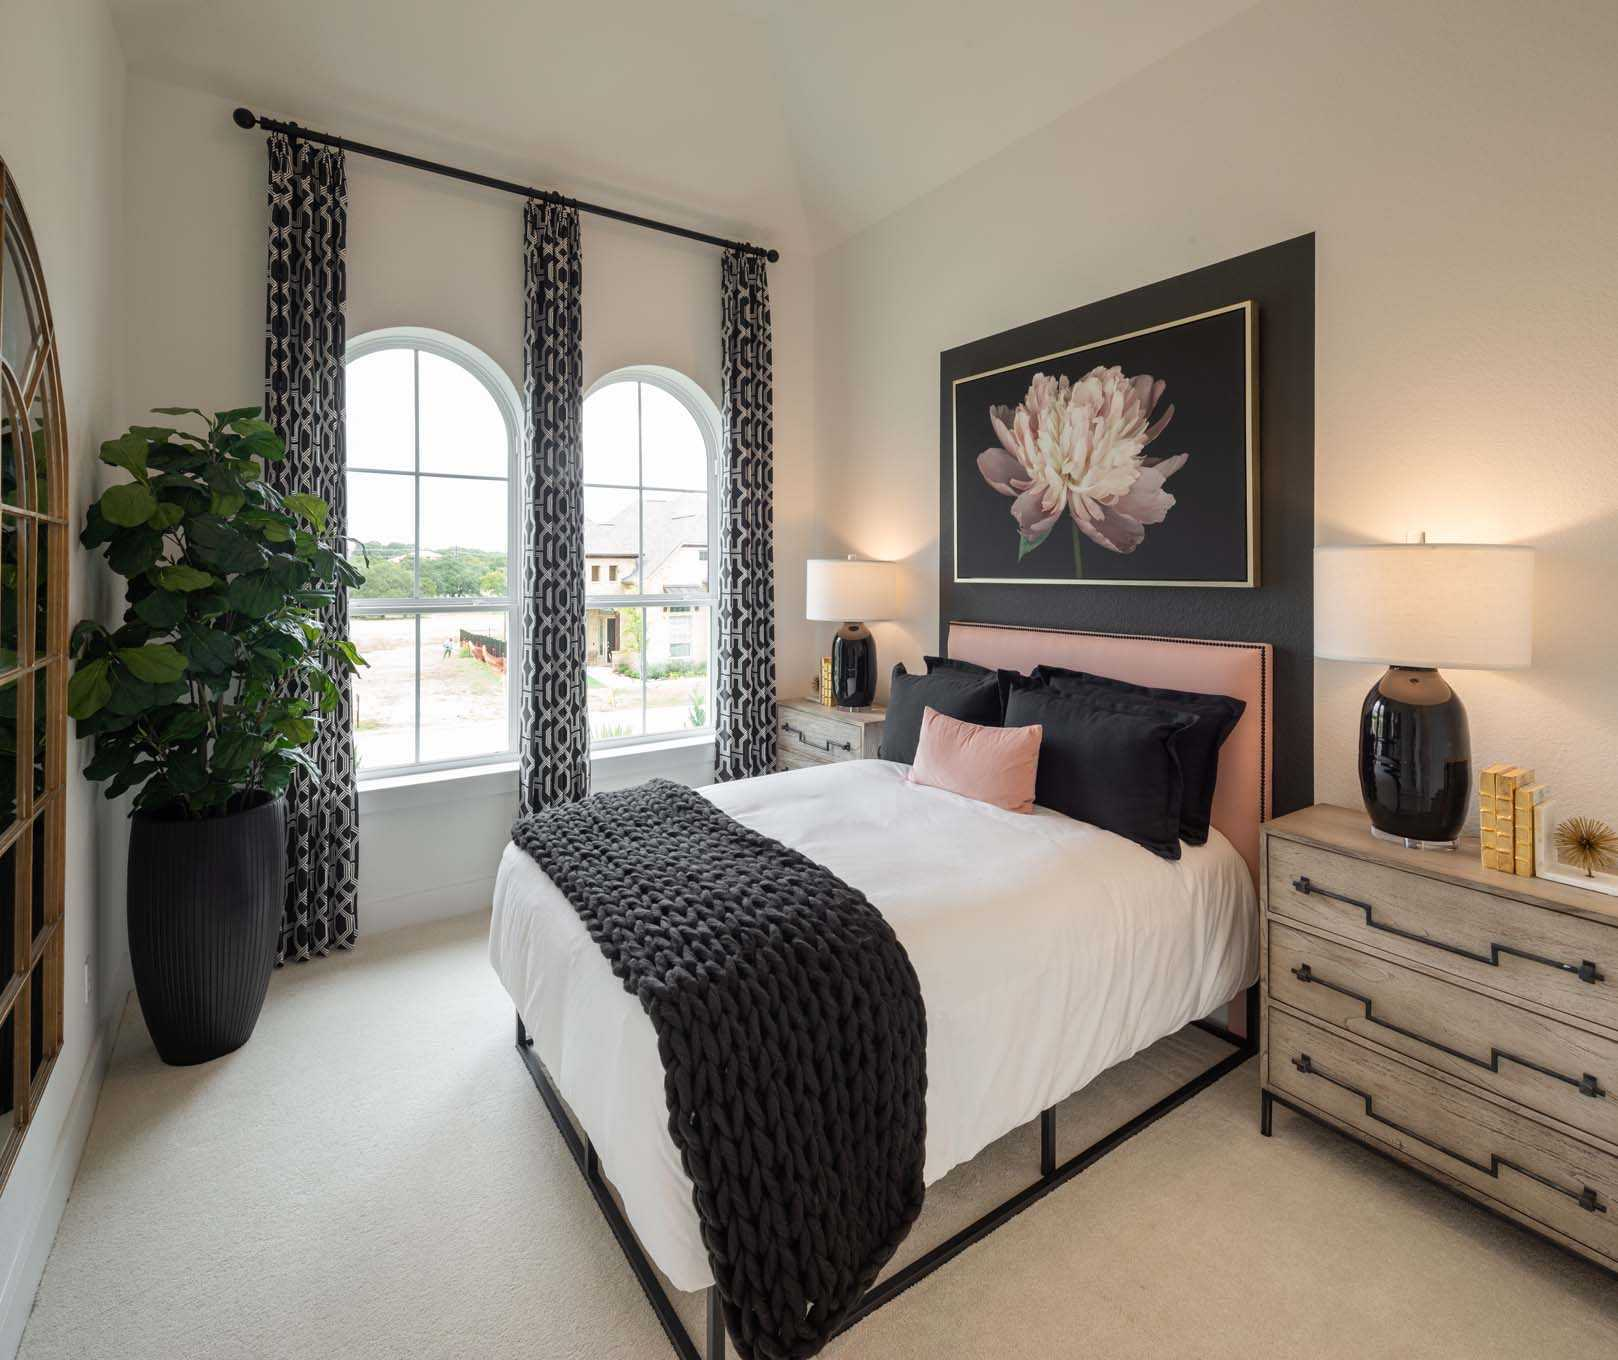 Bedroom featured in the Plan 215 By Highland Homes in San Antonio, TX